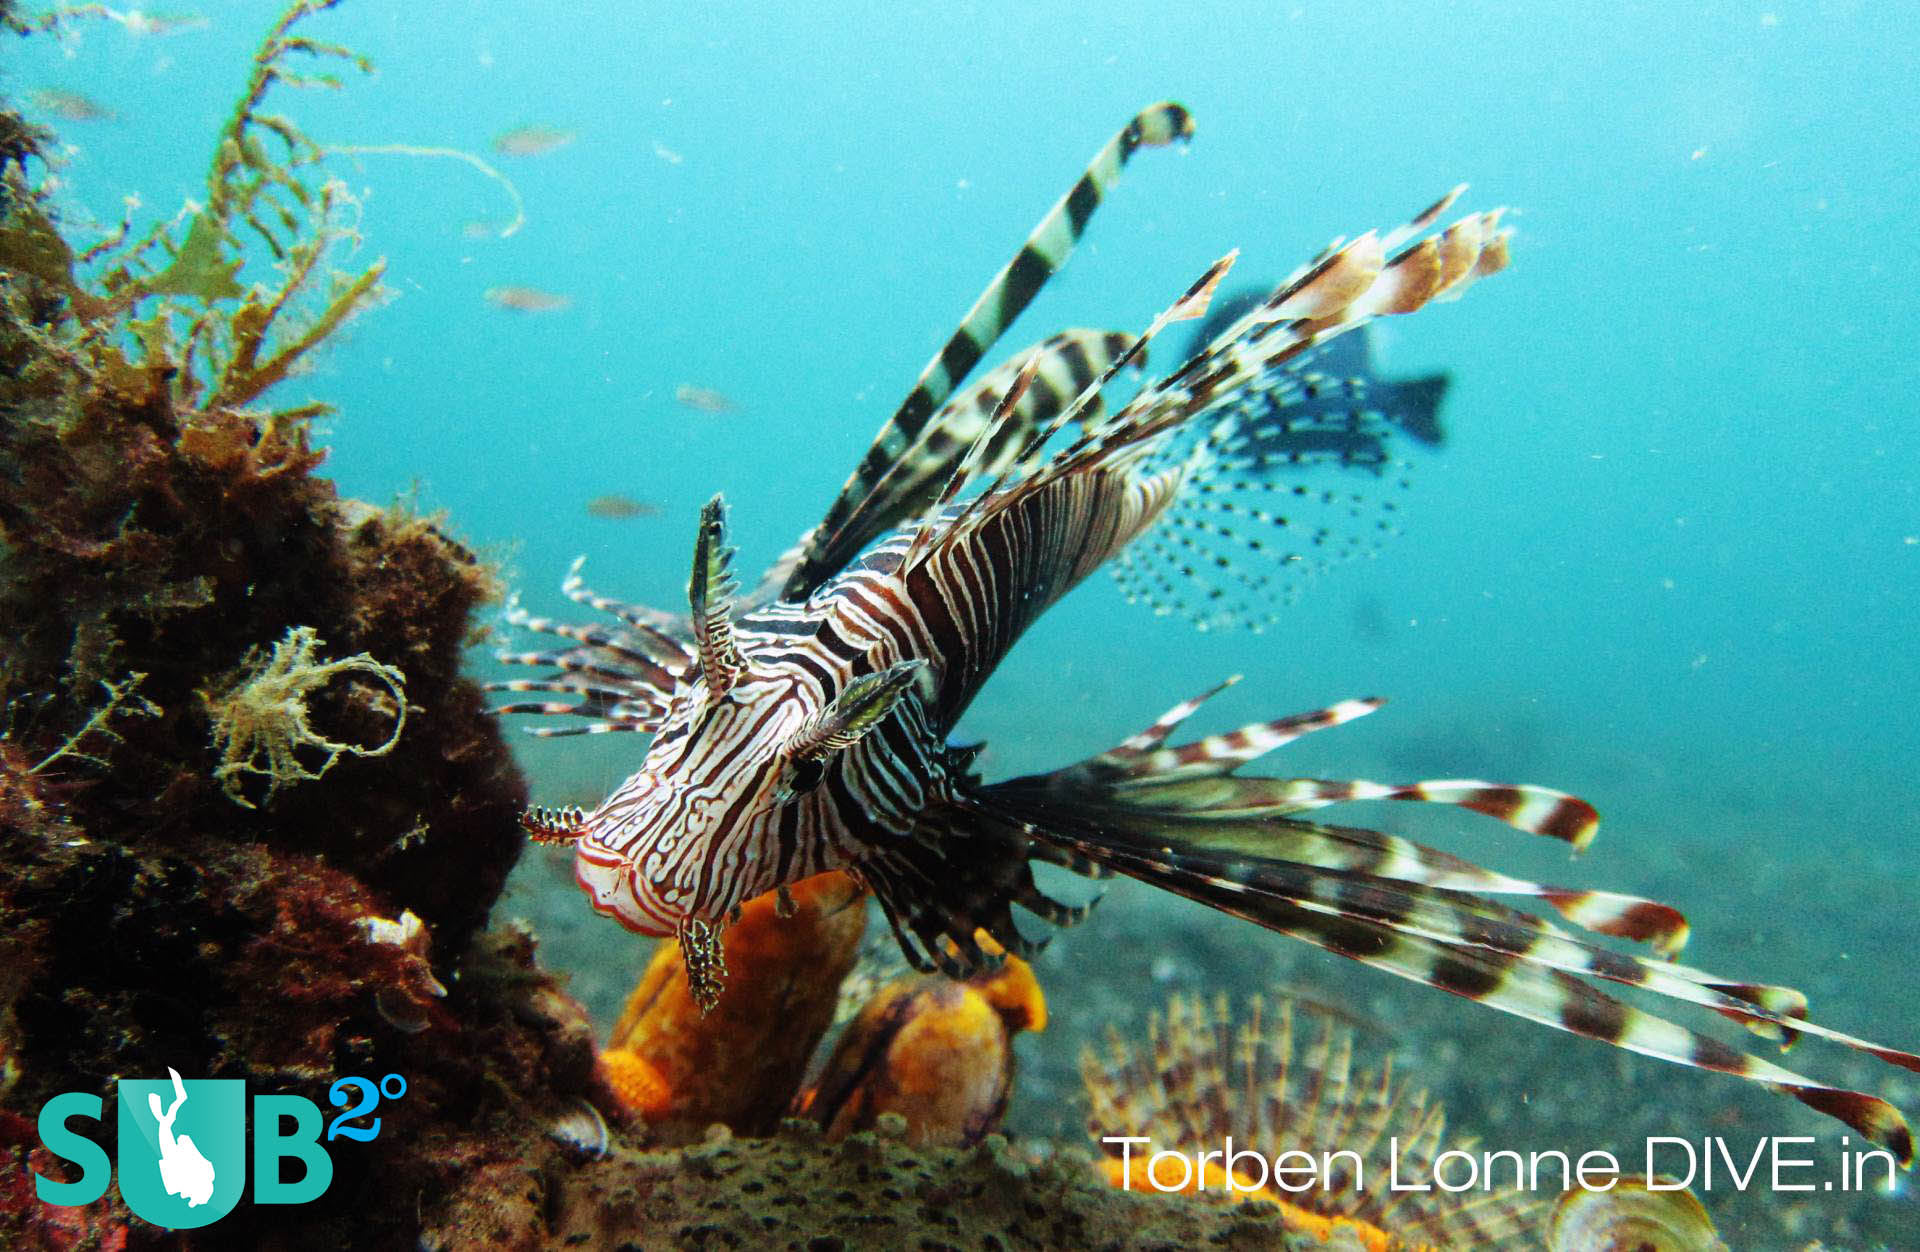 The lionfish is venomous and one of the most ravenous predators in the underwater world.